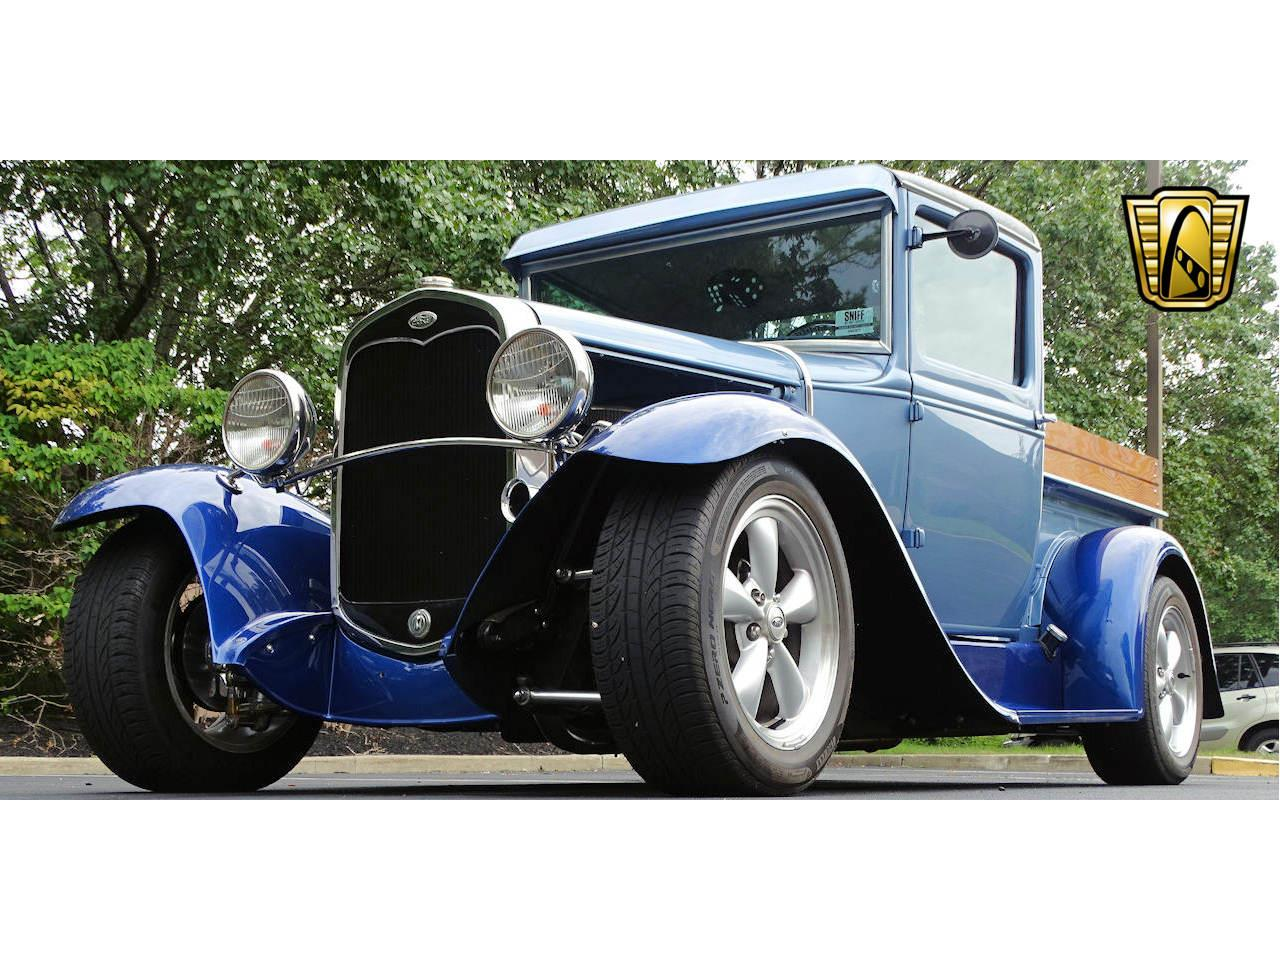 Large Picture of 1931 Ford Model A located in West Deptford New Jersey - $54,000.00 - LNTS